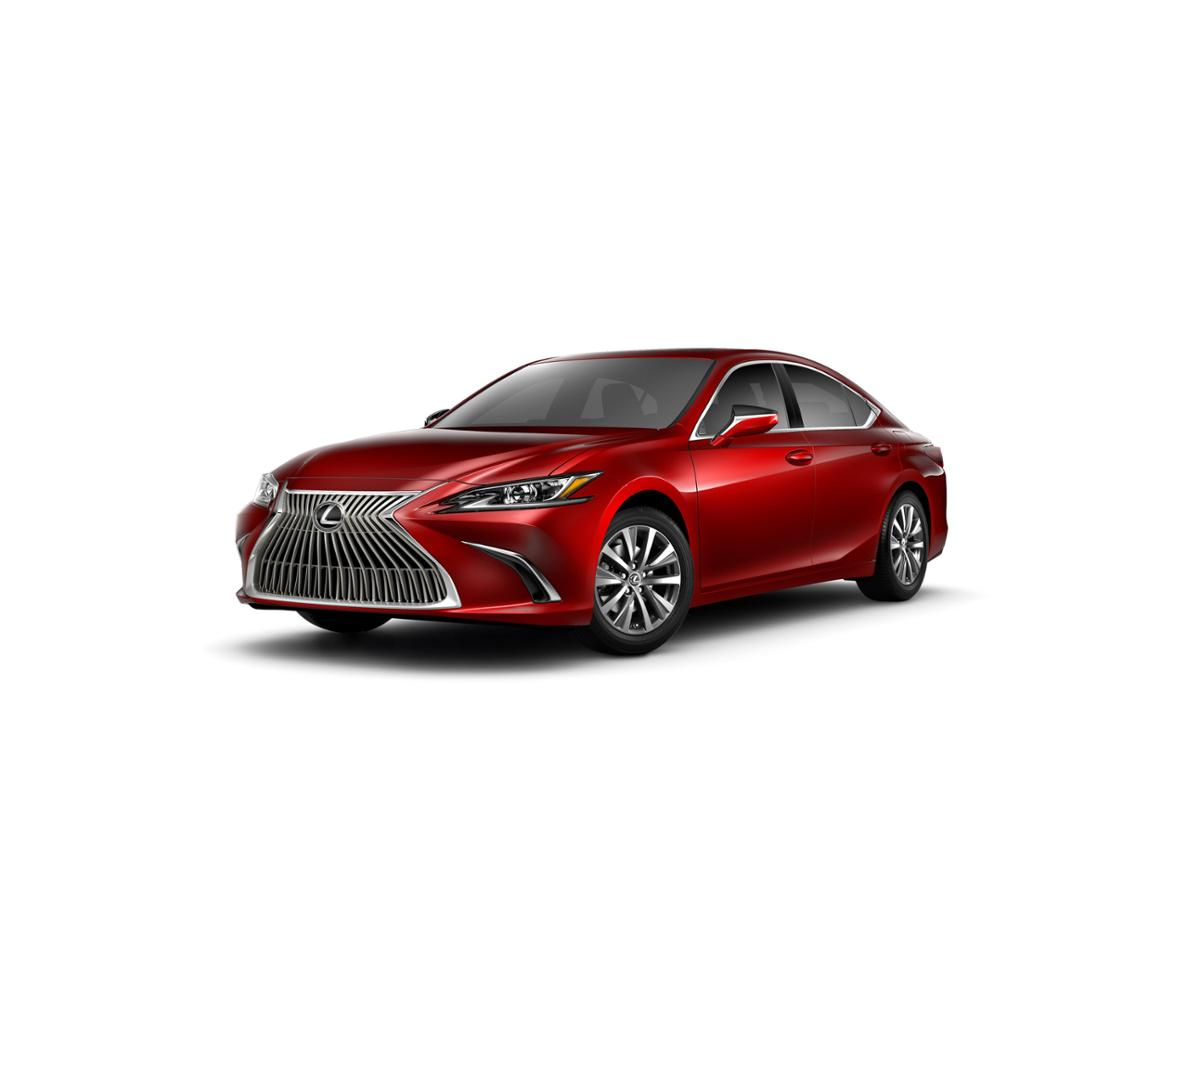 2019 Lexus ES 350 Vehicle Photo in Danvers, MA 01923